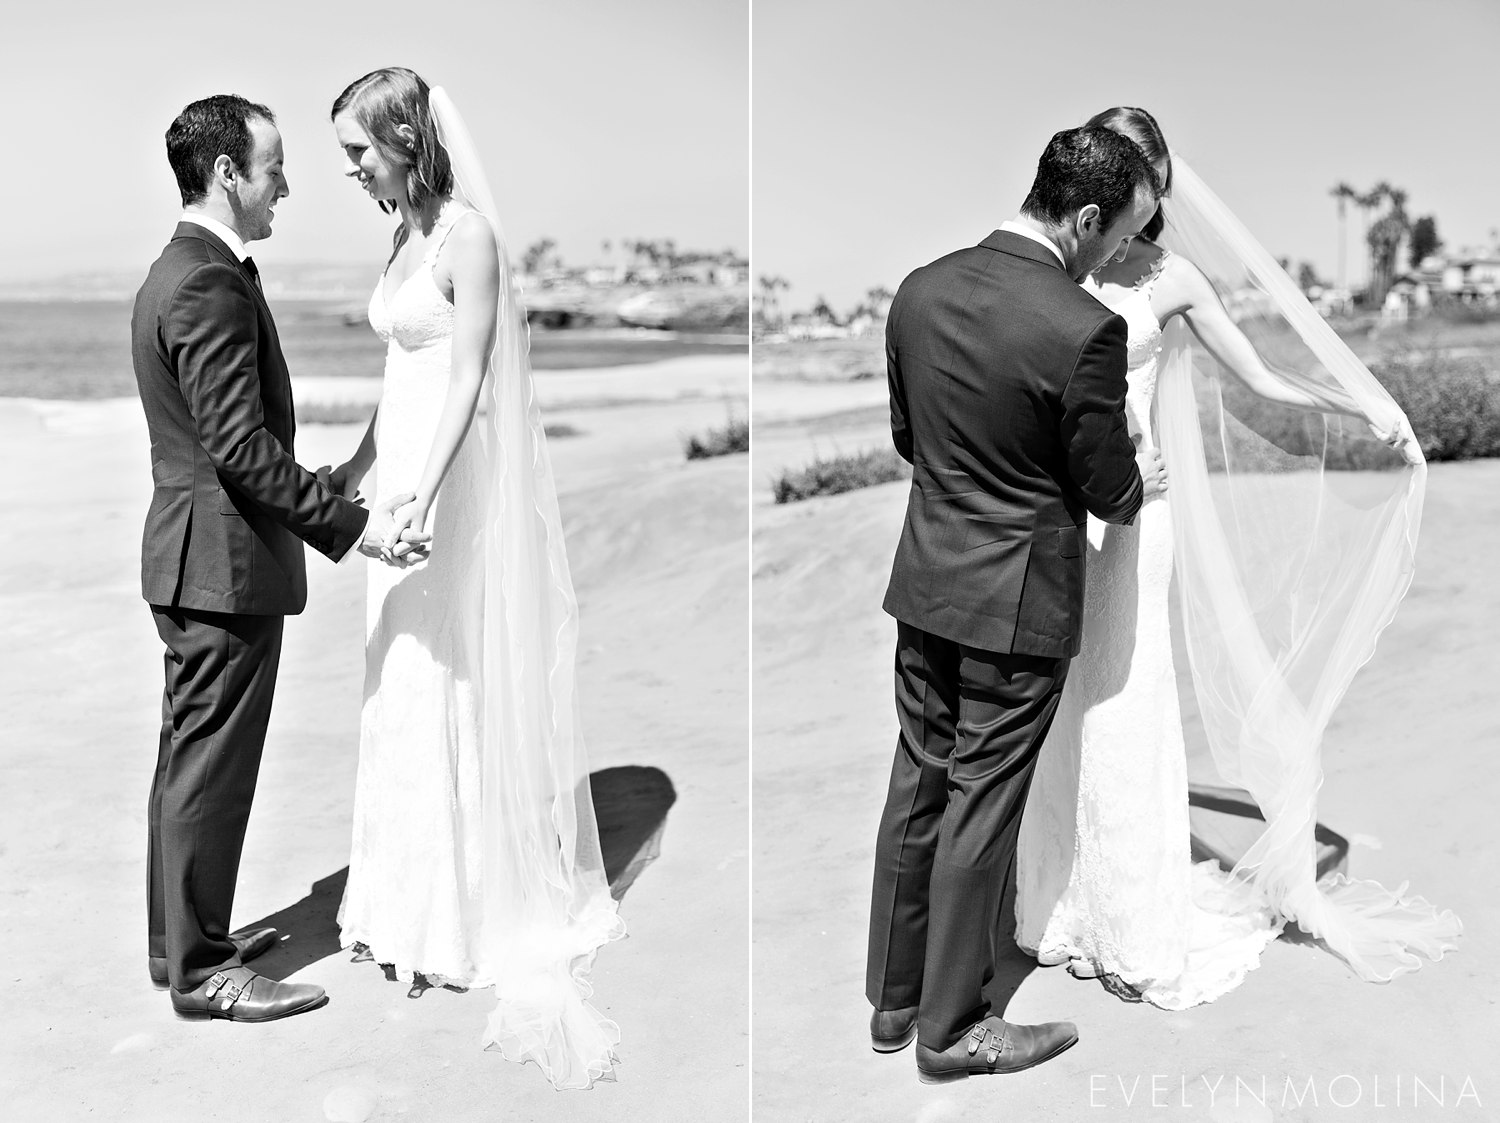 San Diego Wedding_ Becca and Alex_ Evelyn Molina_005.jpg